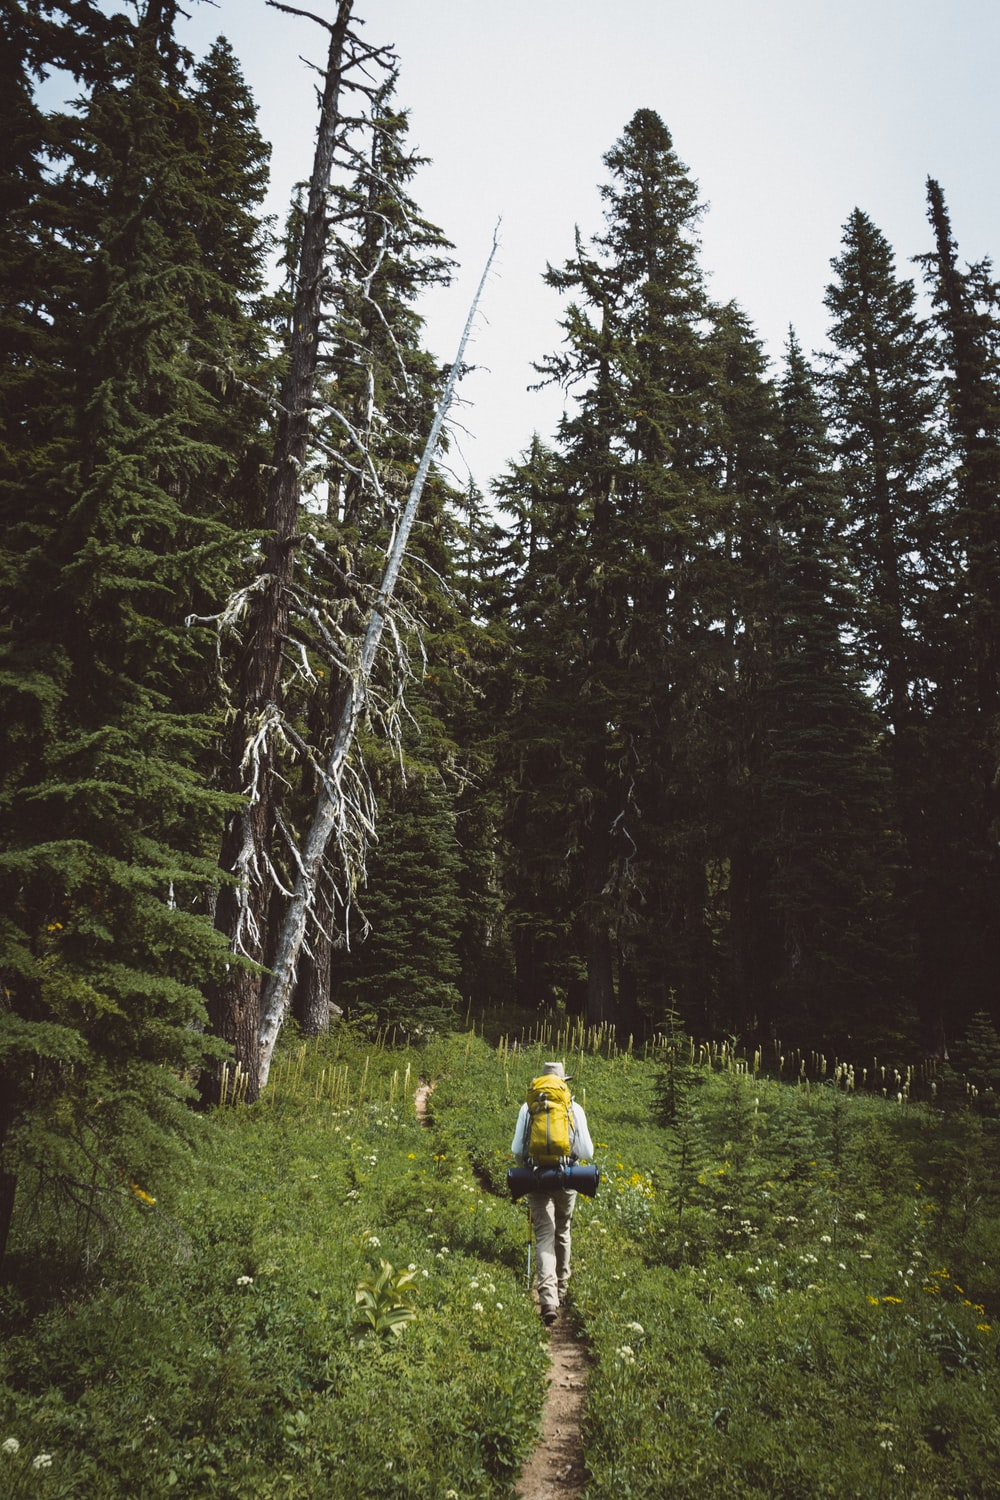 person with yellow hiking backpack walking in between grass with pine trees ahead during daytime